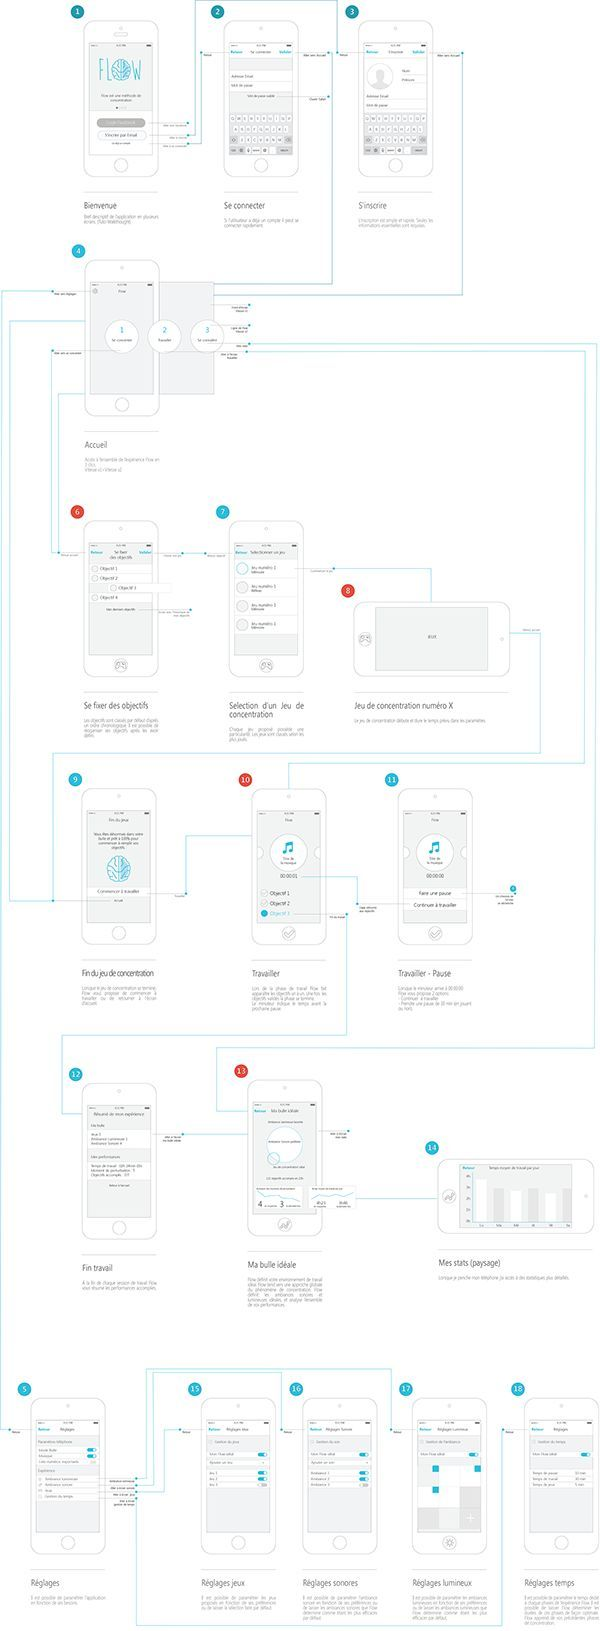 Flow - Dyslexia by Claire Paoletti, via Behance. The UX Blog podcast is also available on iTunes.